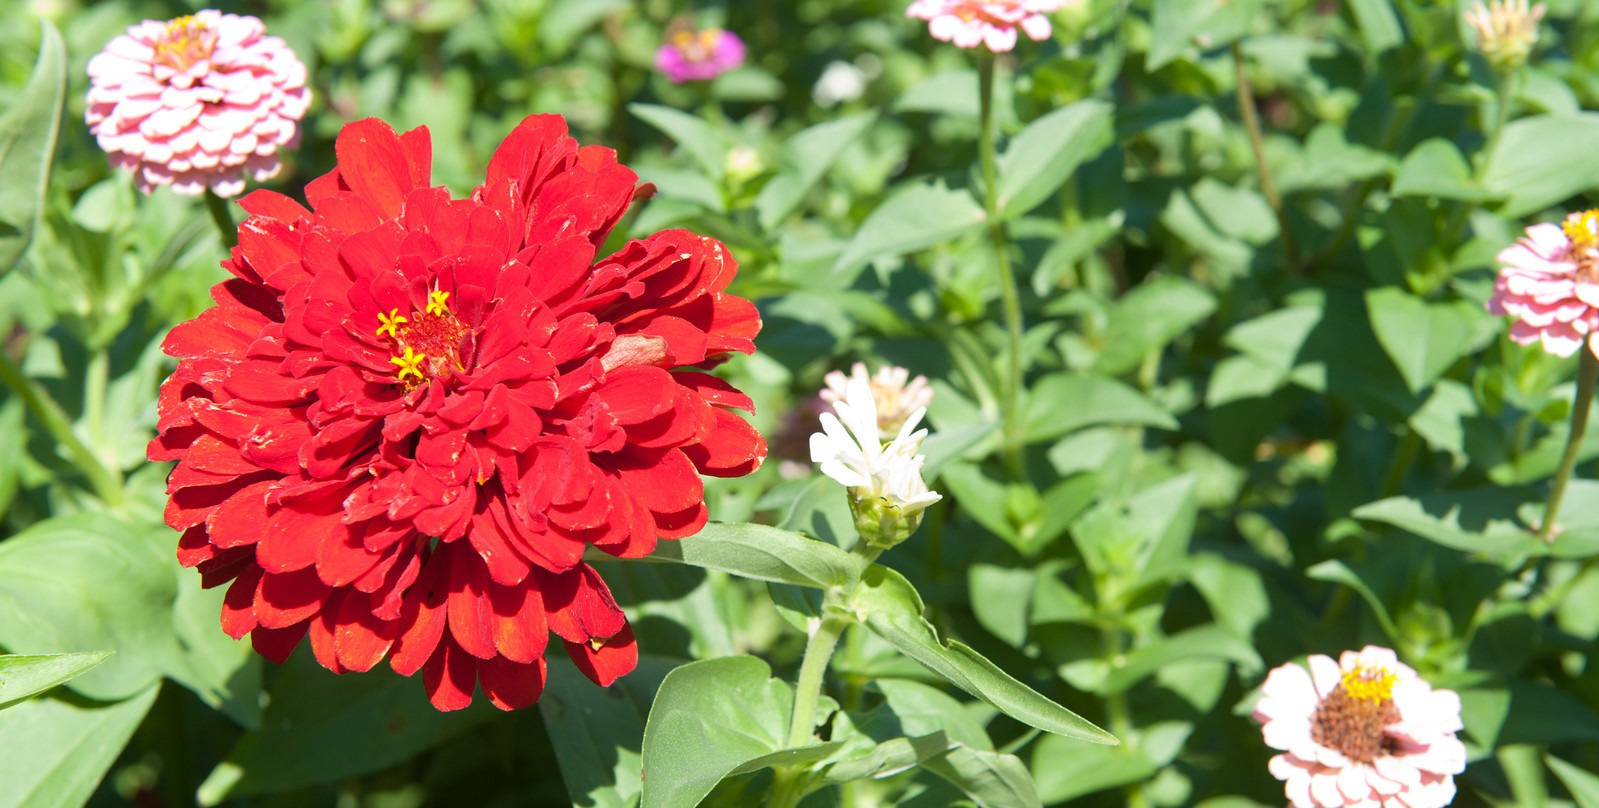 red flower on the right with some pink ones intermixed